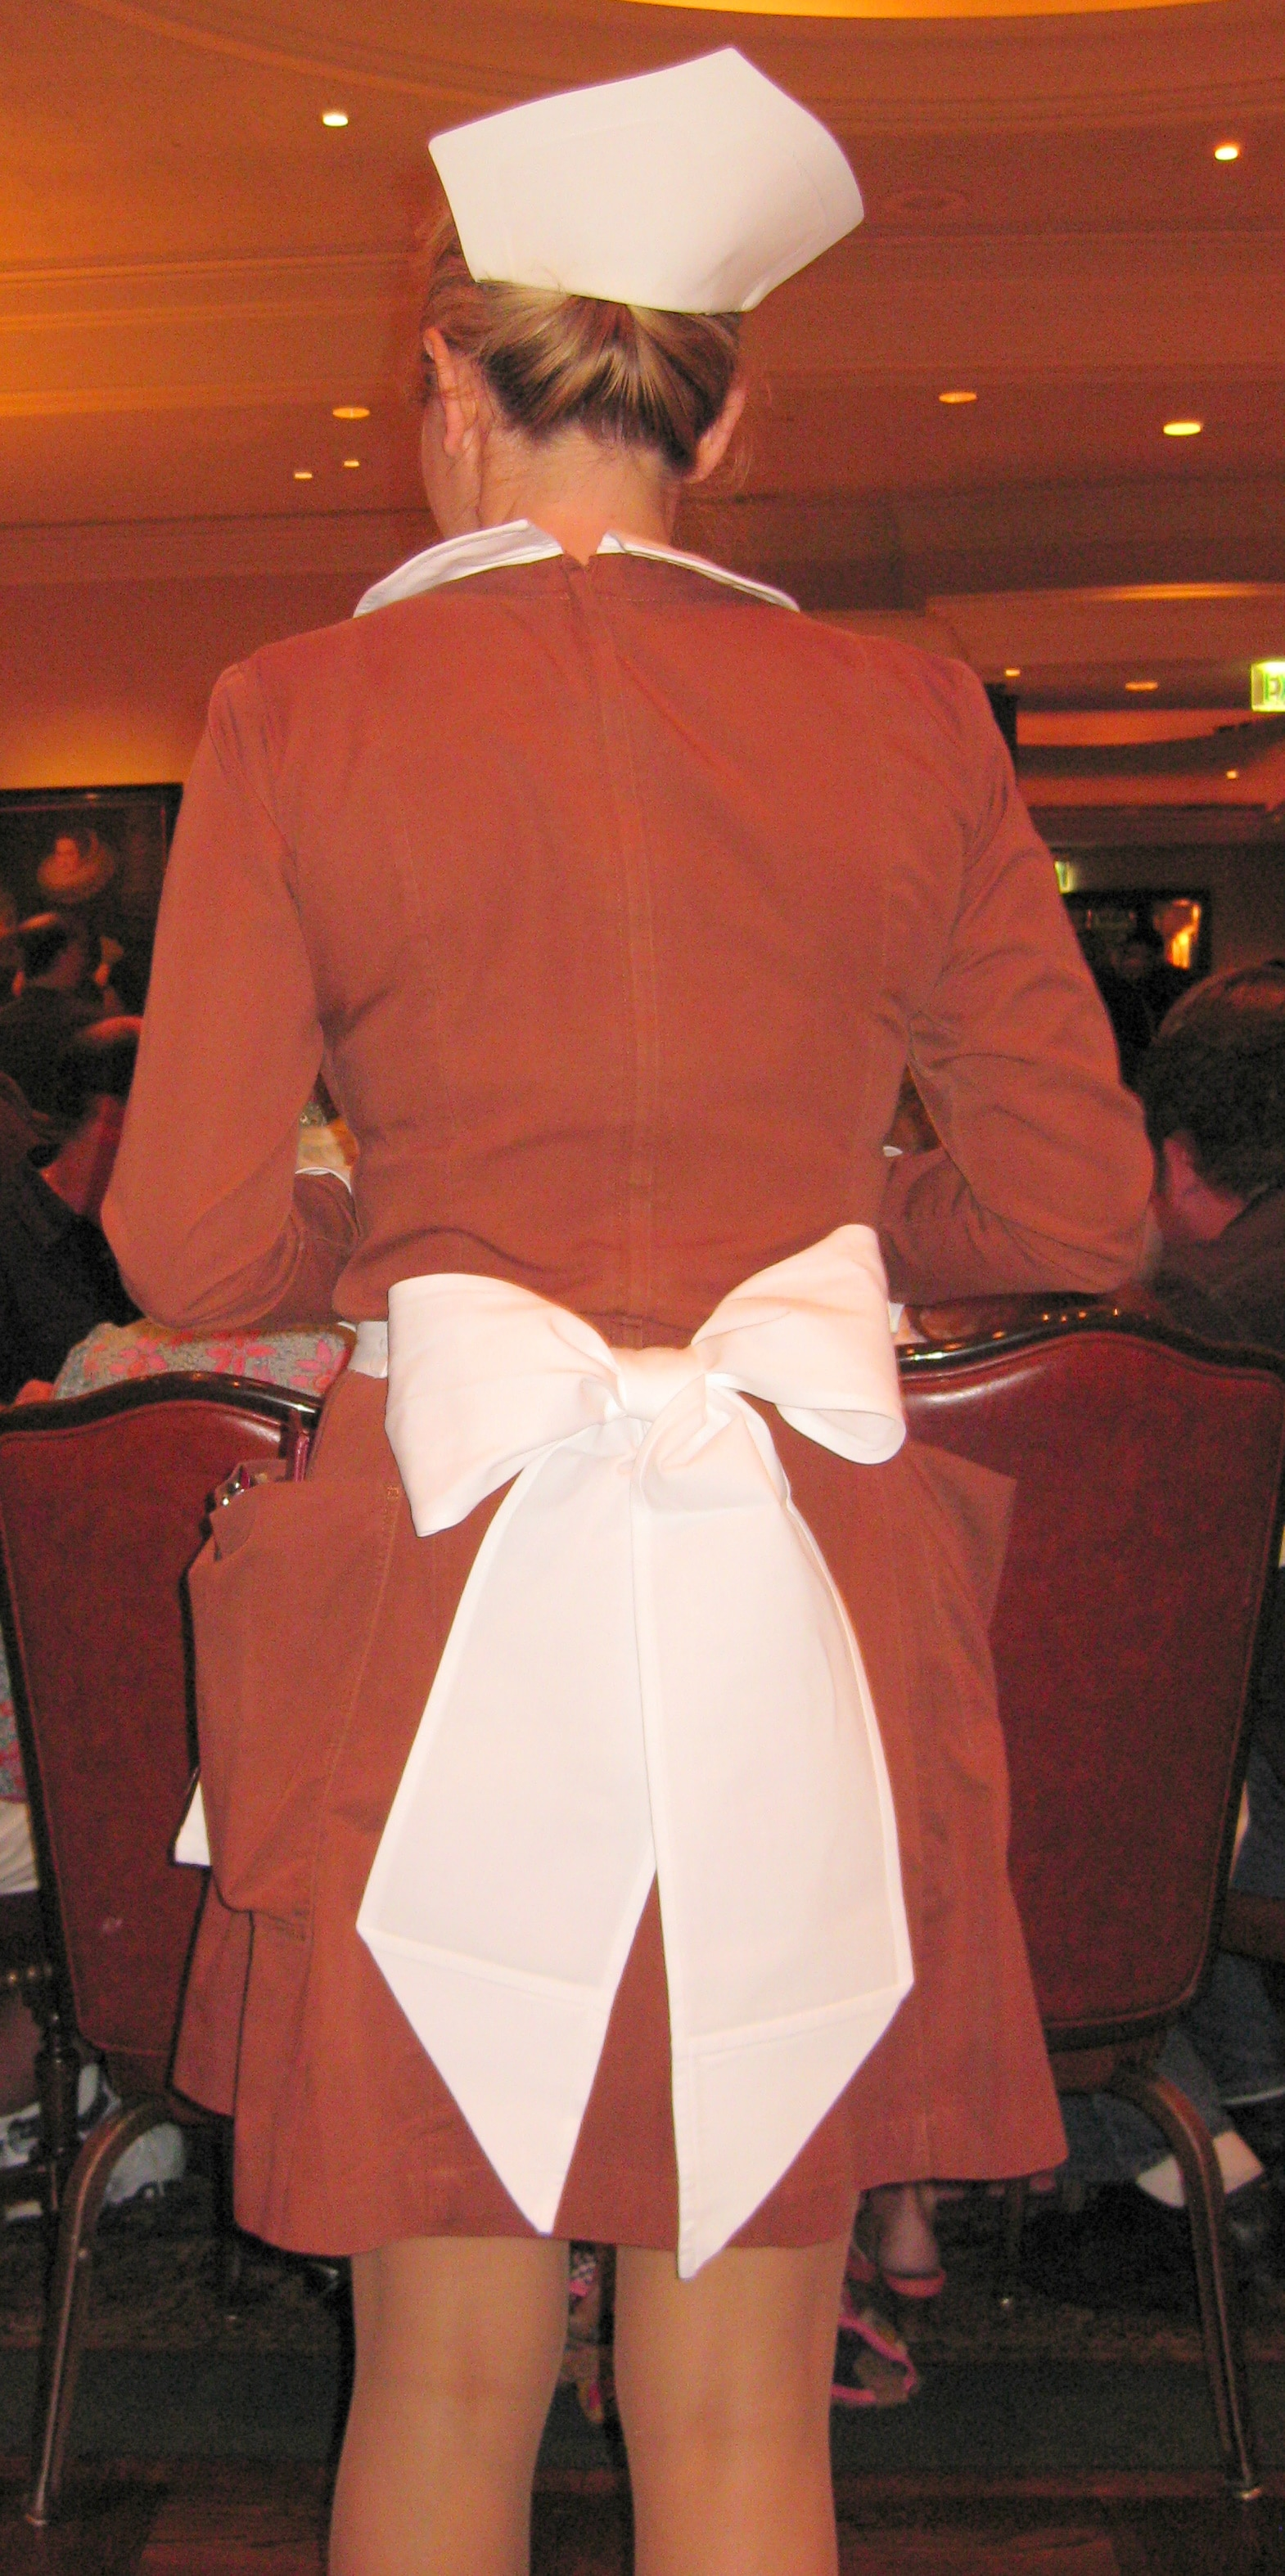 The Waitresses S Old Fashioned Uniforms Gayot S Blog